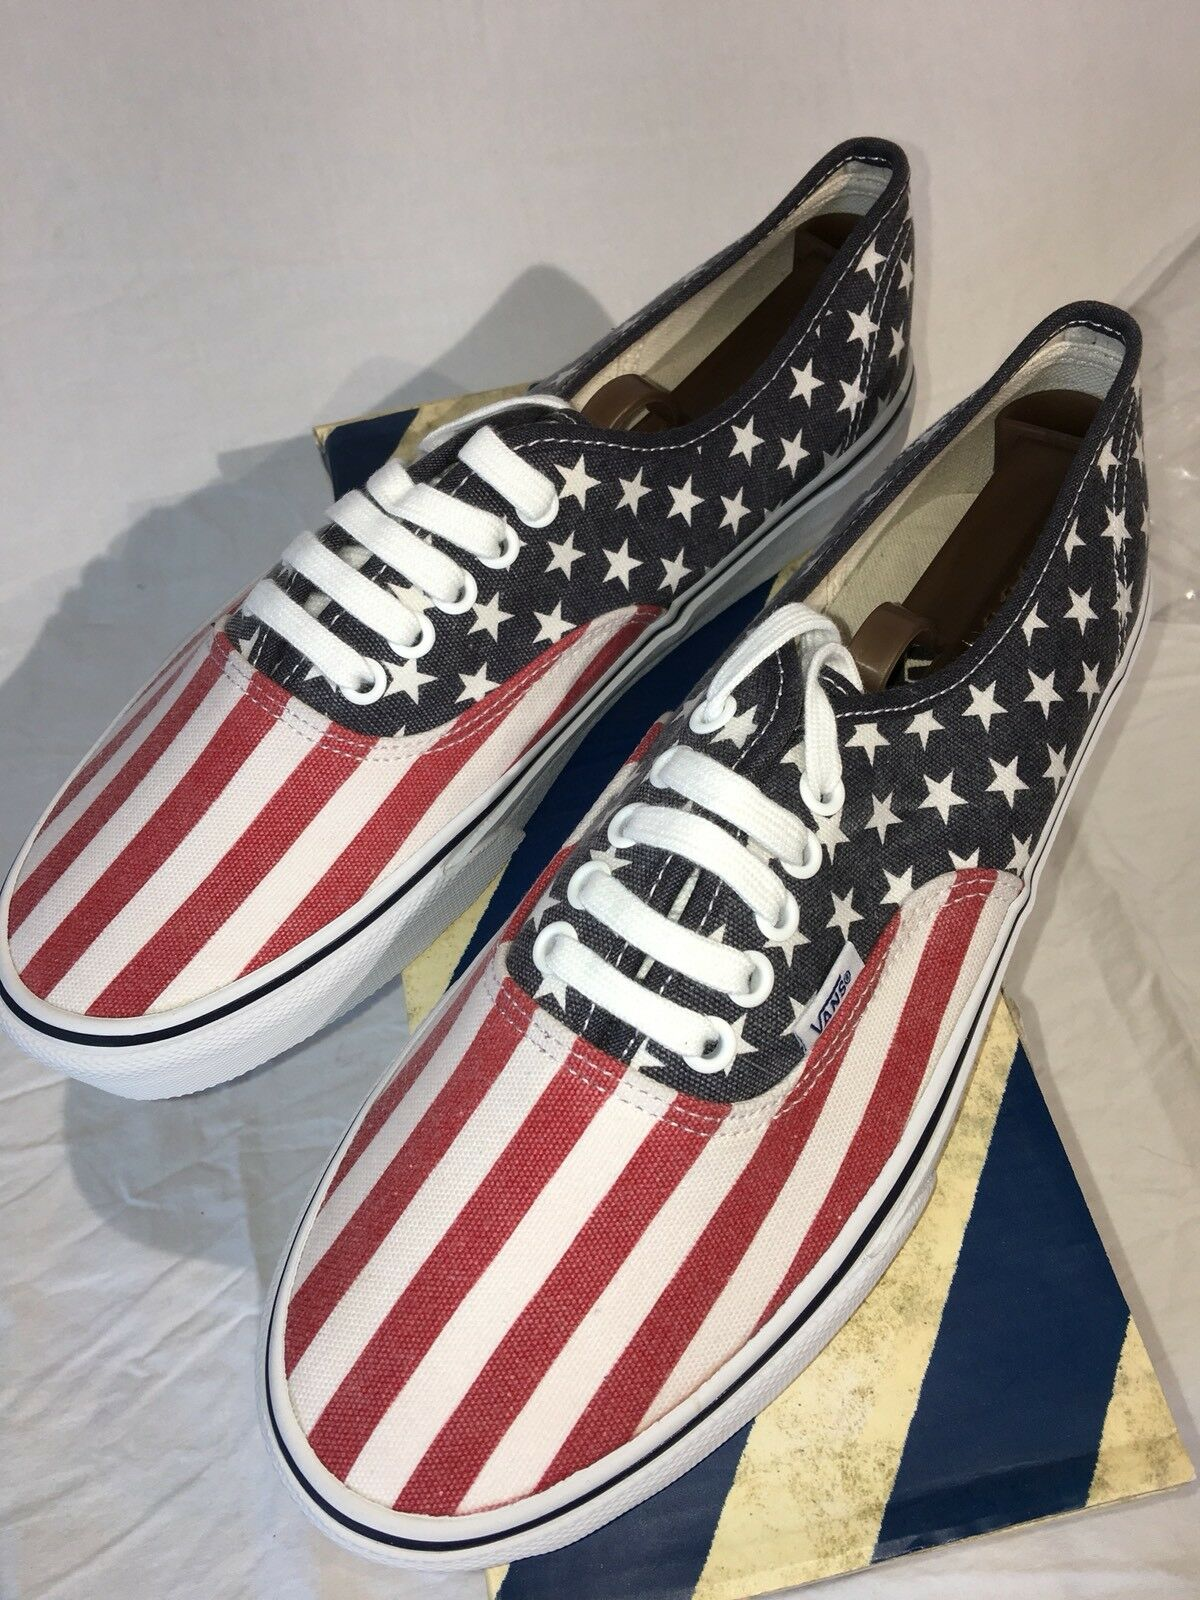 Vans (Van Doren) American Stars & Stripes 8.5 Fits 9 US NEW